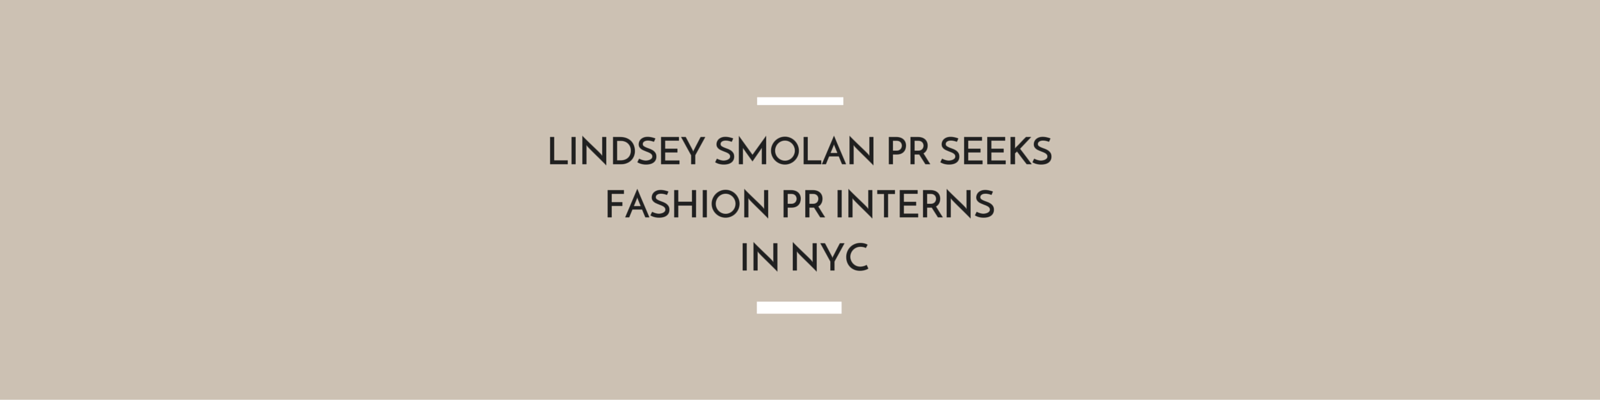 Lindsey Smolan PR Seeks Fashion PR Interns in NYC